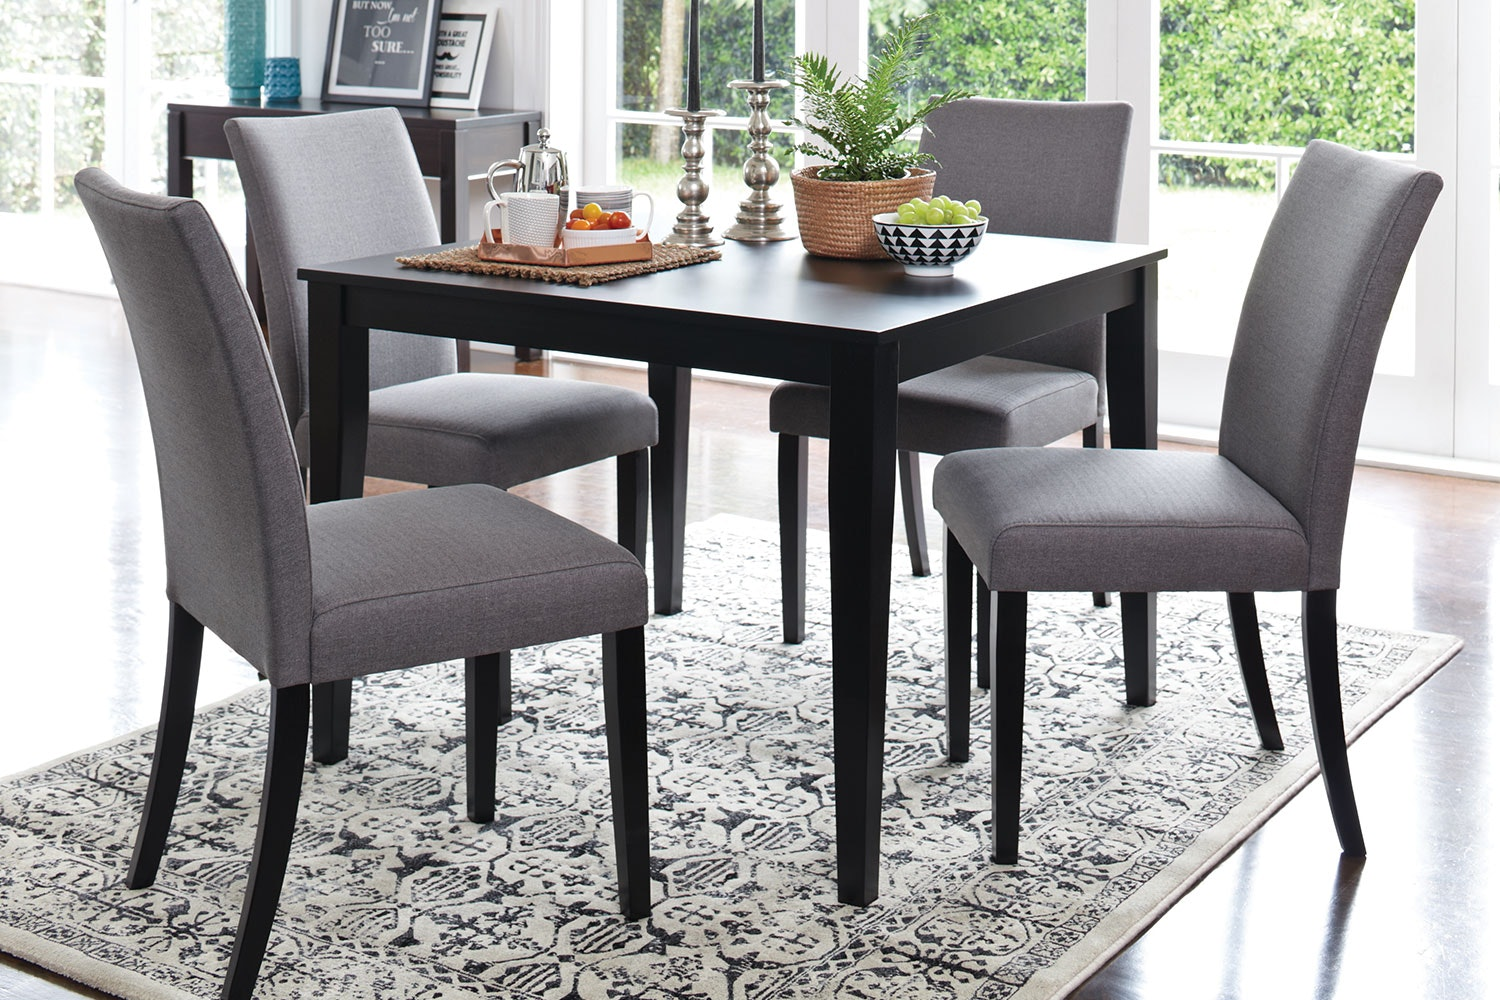 Monza 5 Piece Dining Suite by Paulack Furniture